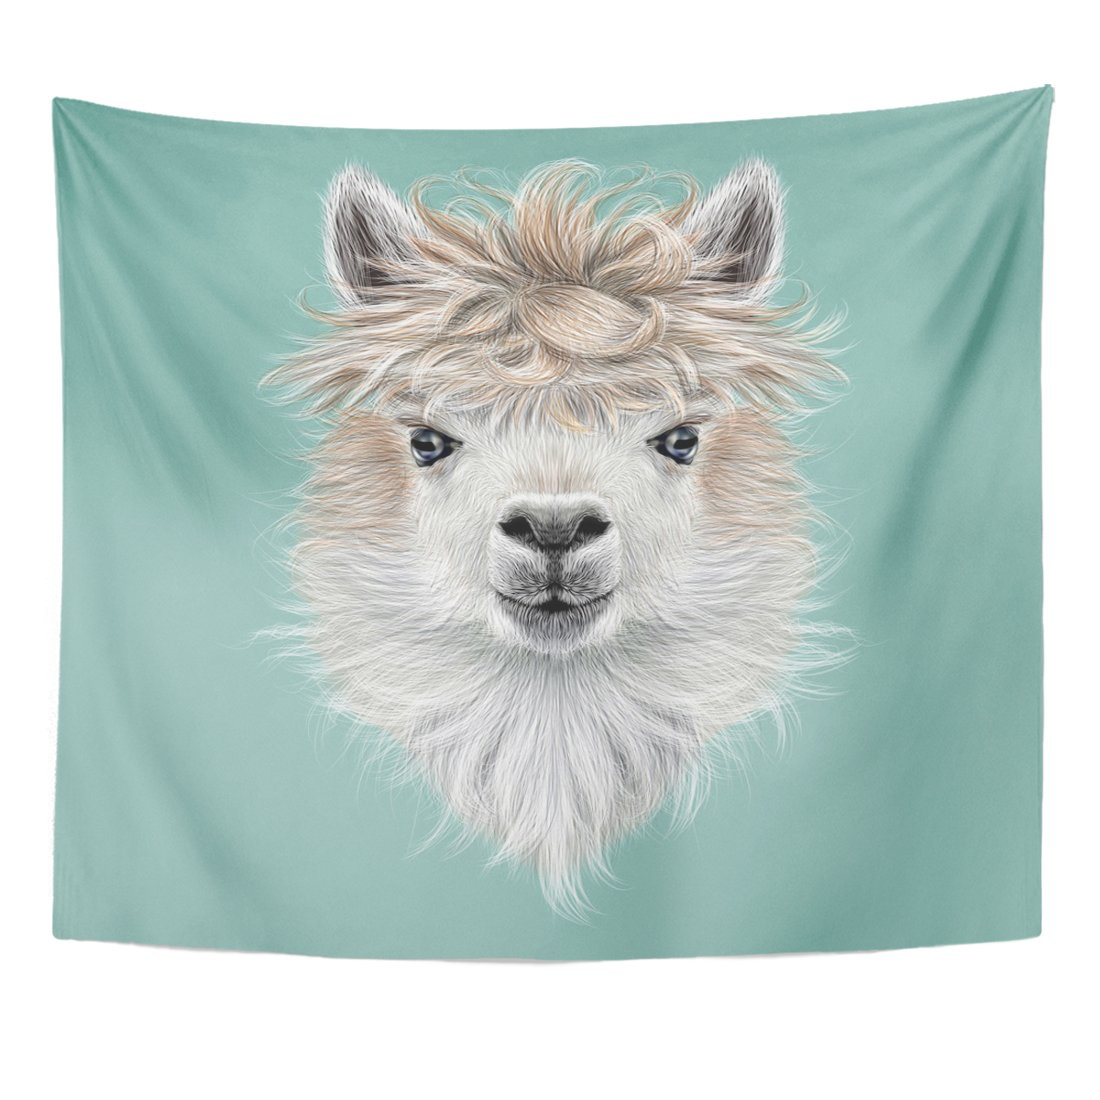 TOMPOP Tapestry America Llama Animal Portrait of Alpaca on Blue Cute Home Decor Wall Hanging for Living Room Bedroom Dorm 50x60 Inches